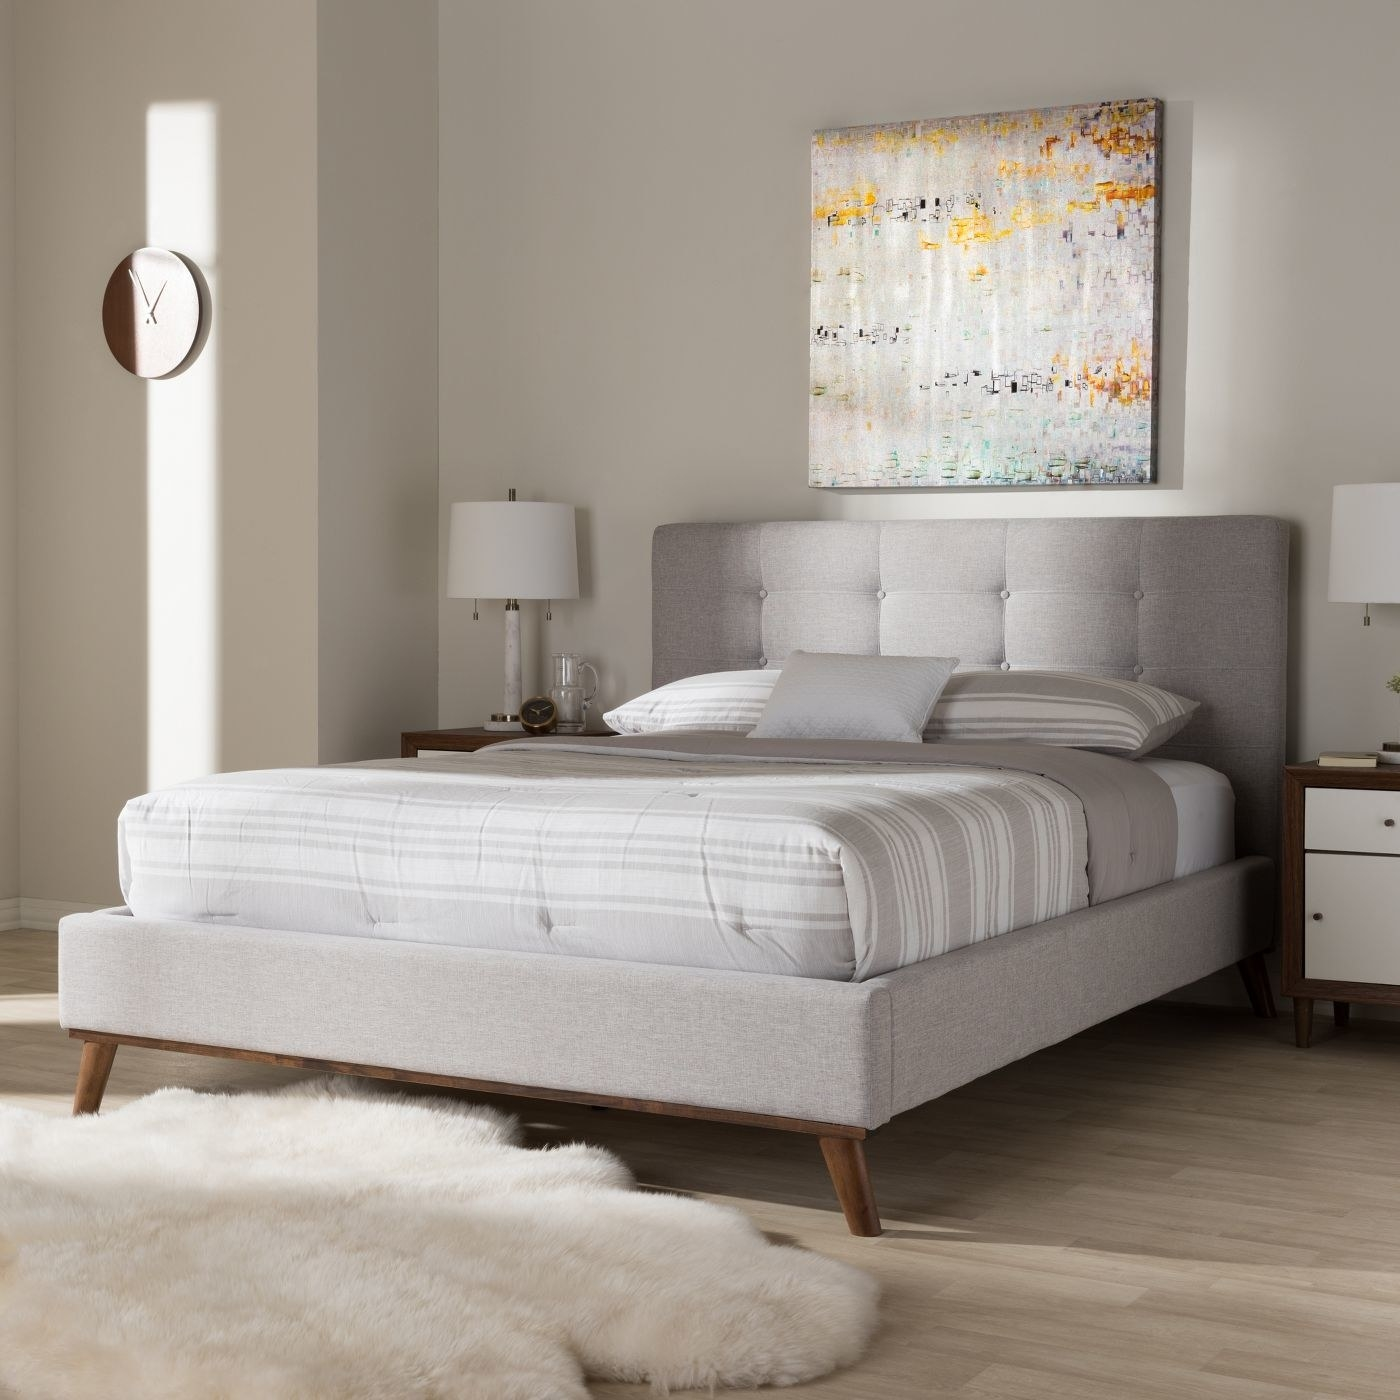 grey upholstered platform bed with wooden legs